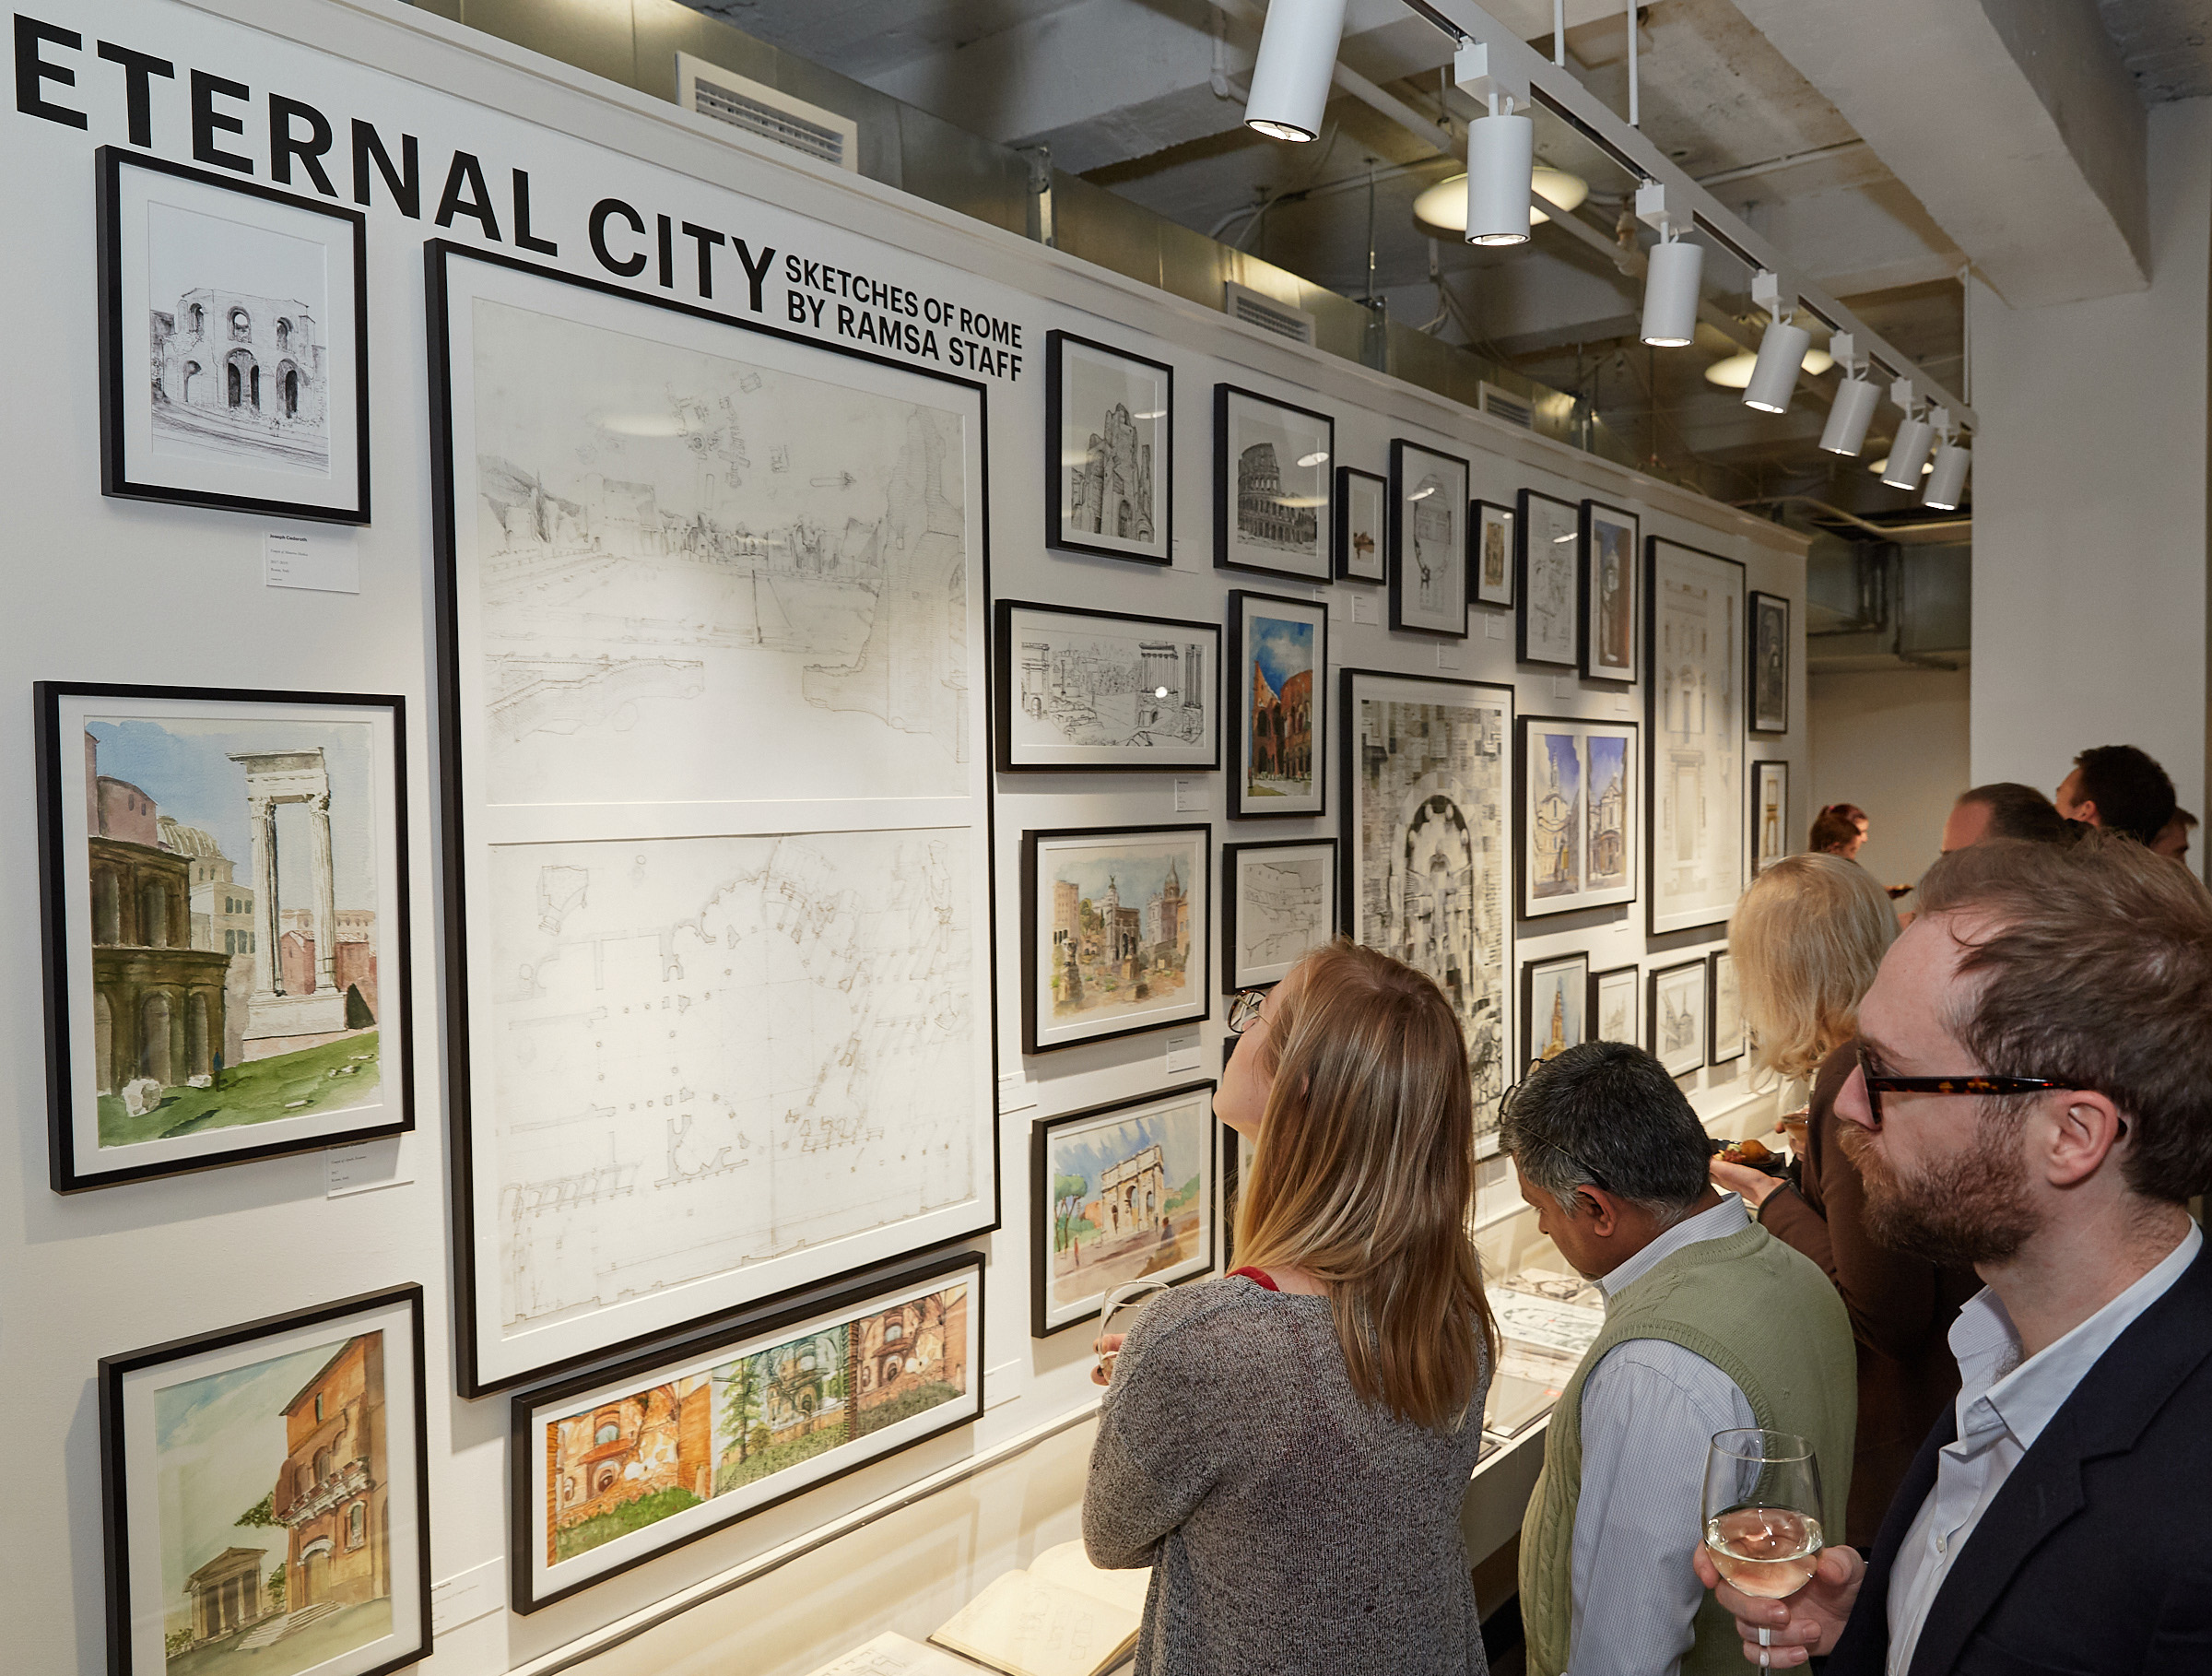 RAMSA Opens Sixth Sketch Gallery Exhibit